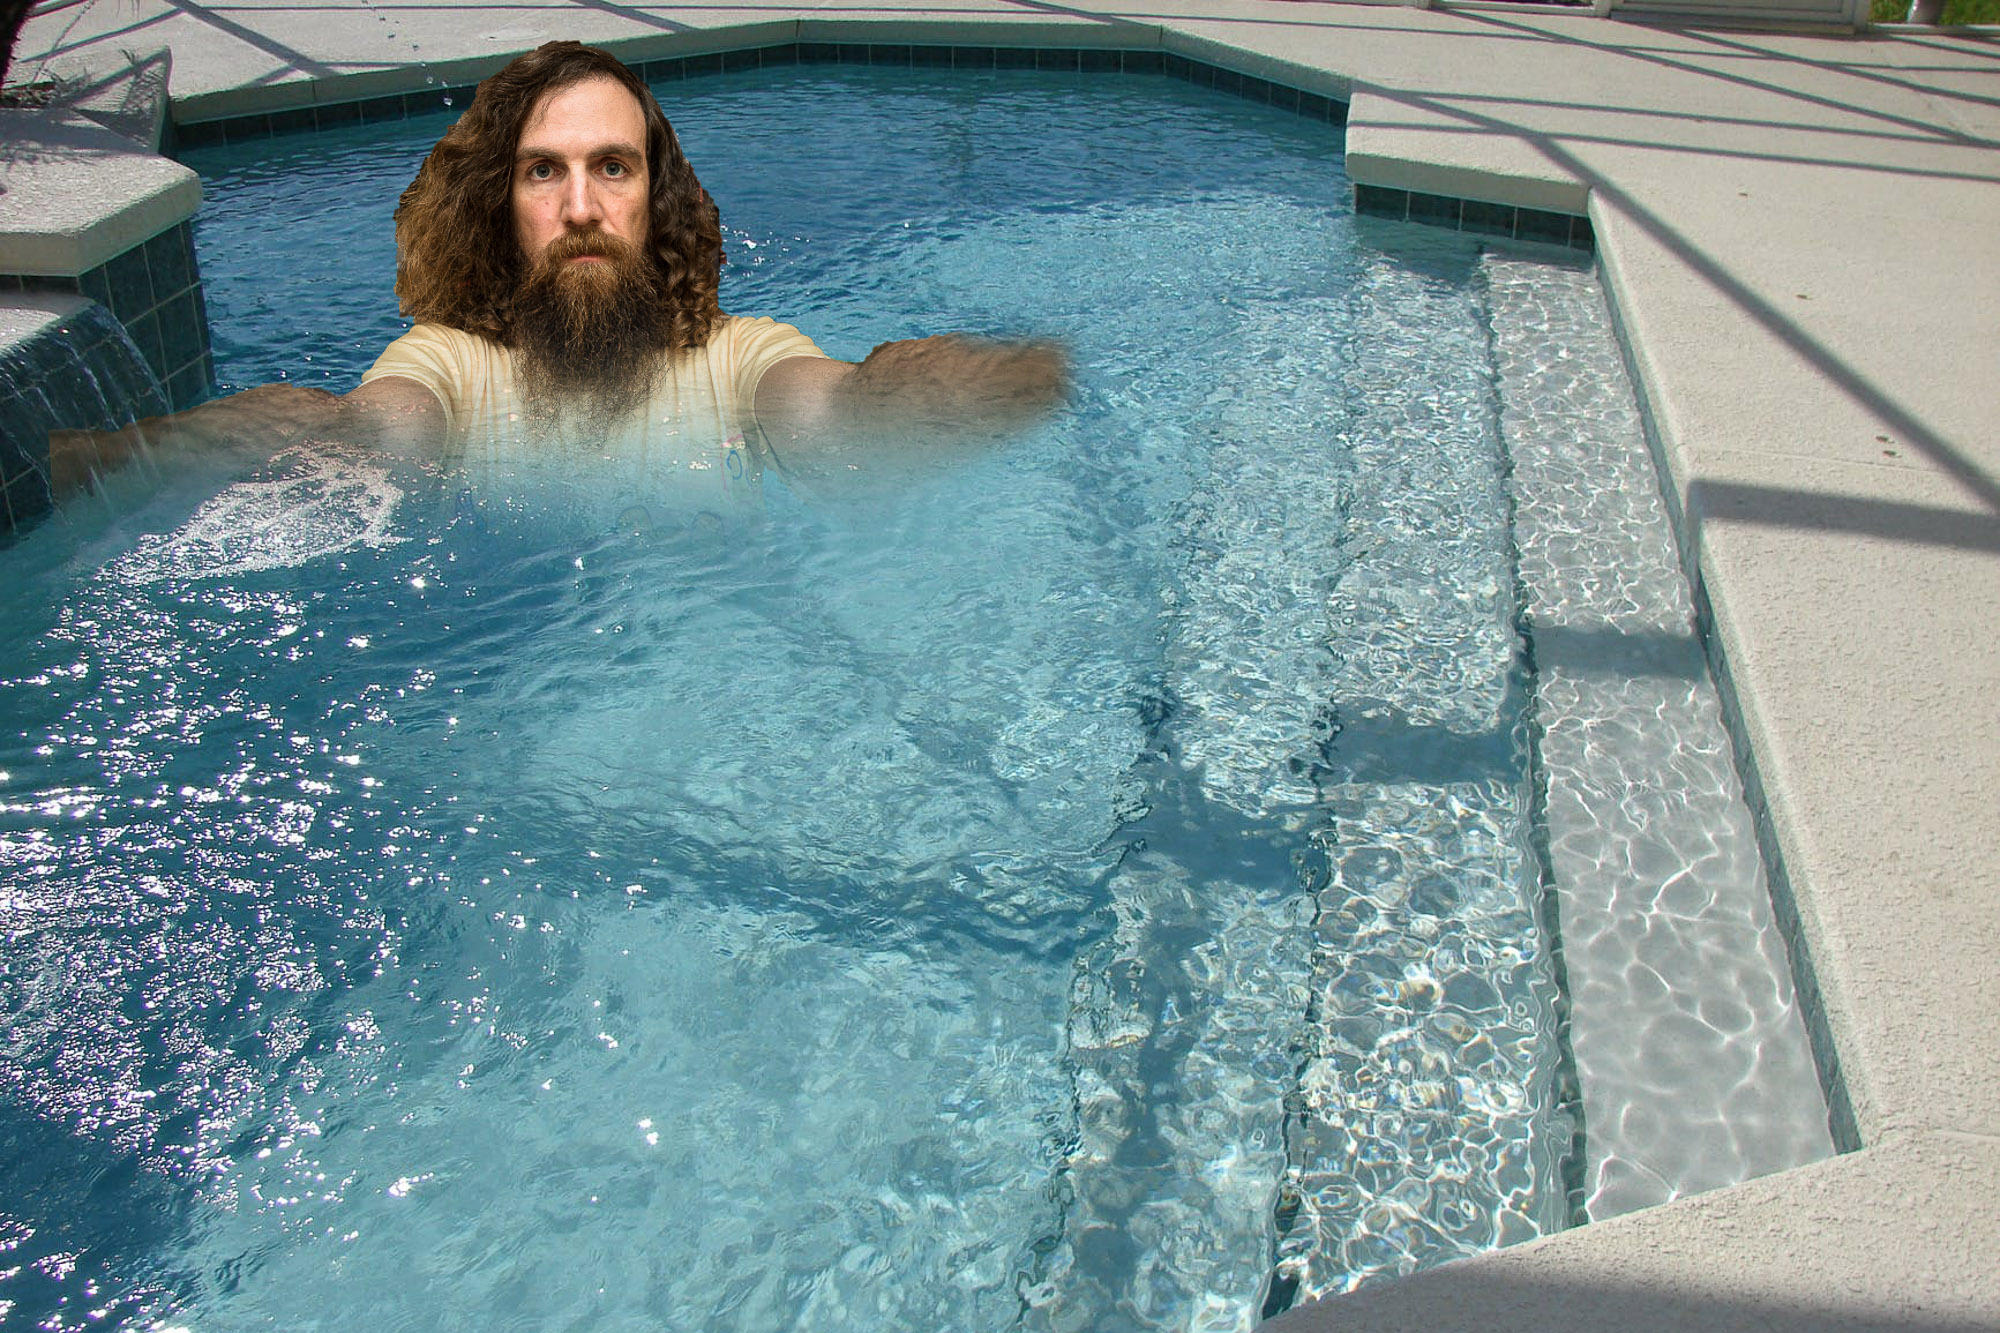 Chris in a pool